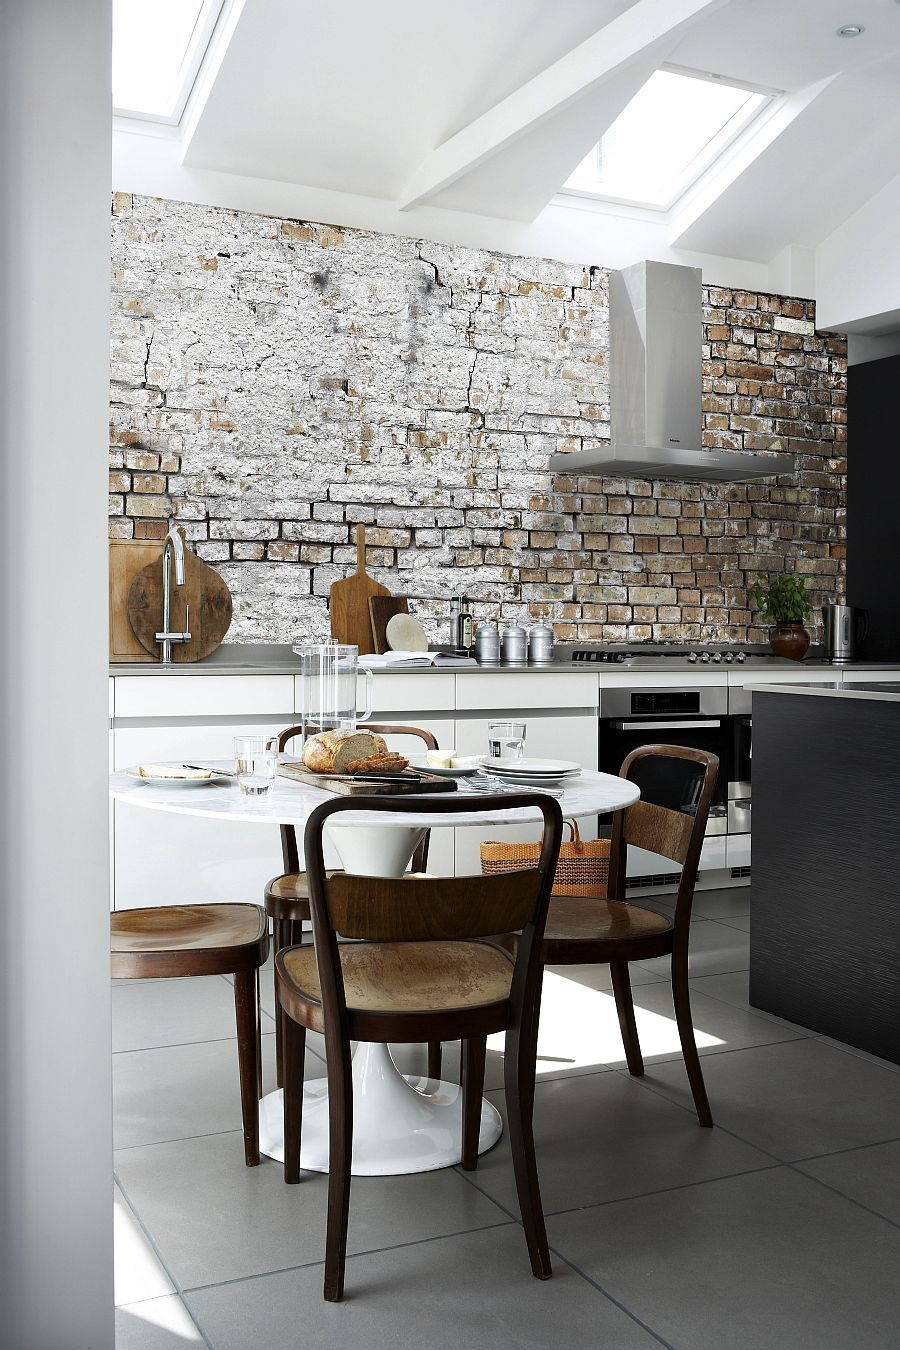 Aged Brick Look With Extensive Wall Mural Ok I Am Only Dreaming Here But This